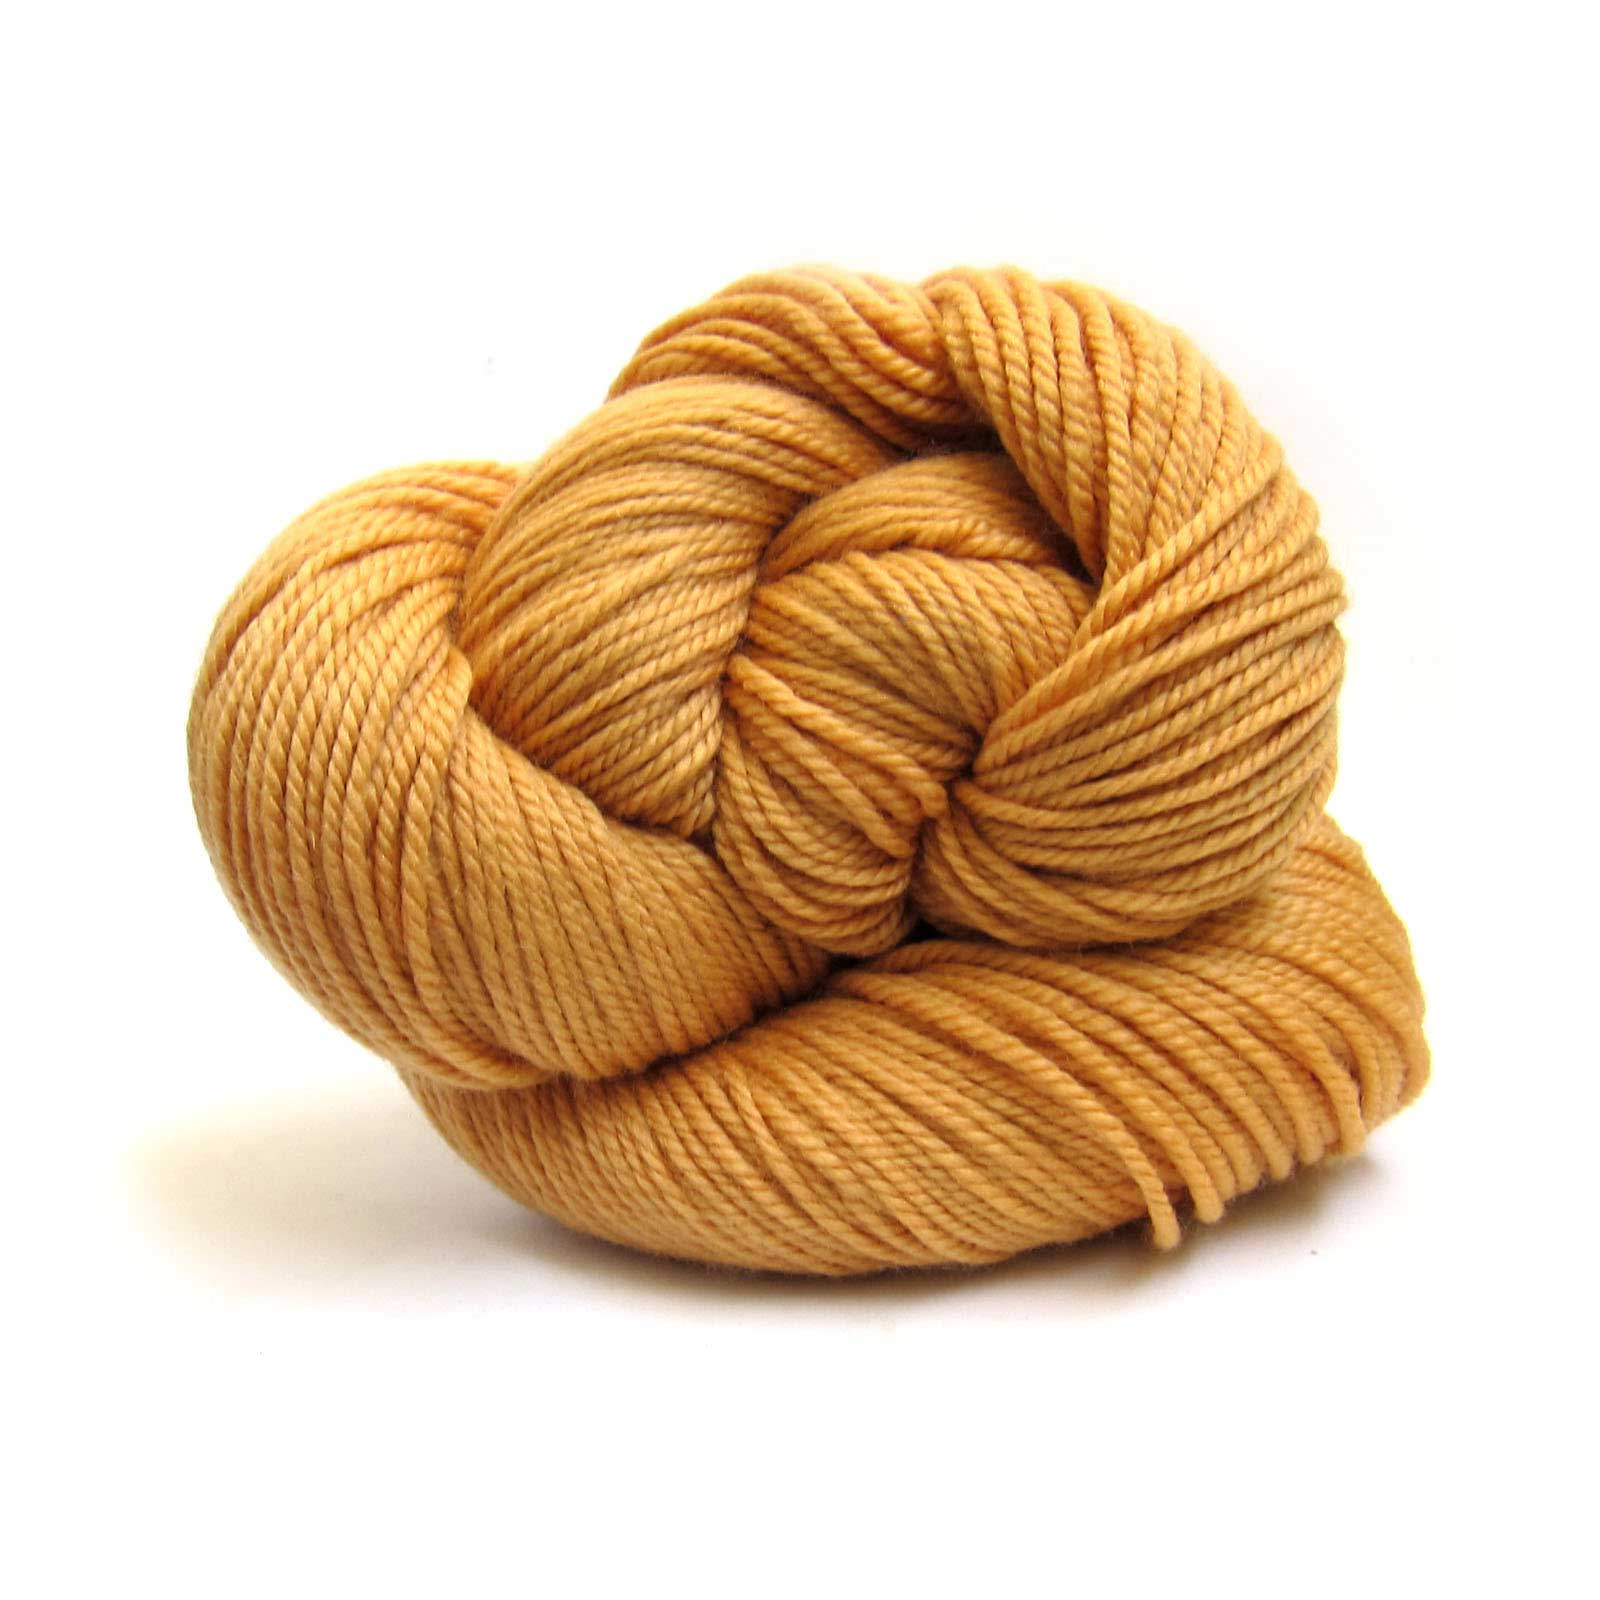 Straw Louet Gems 100% Merino Superwash Yarn